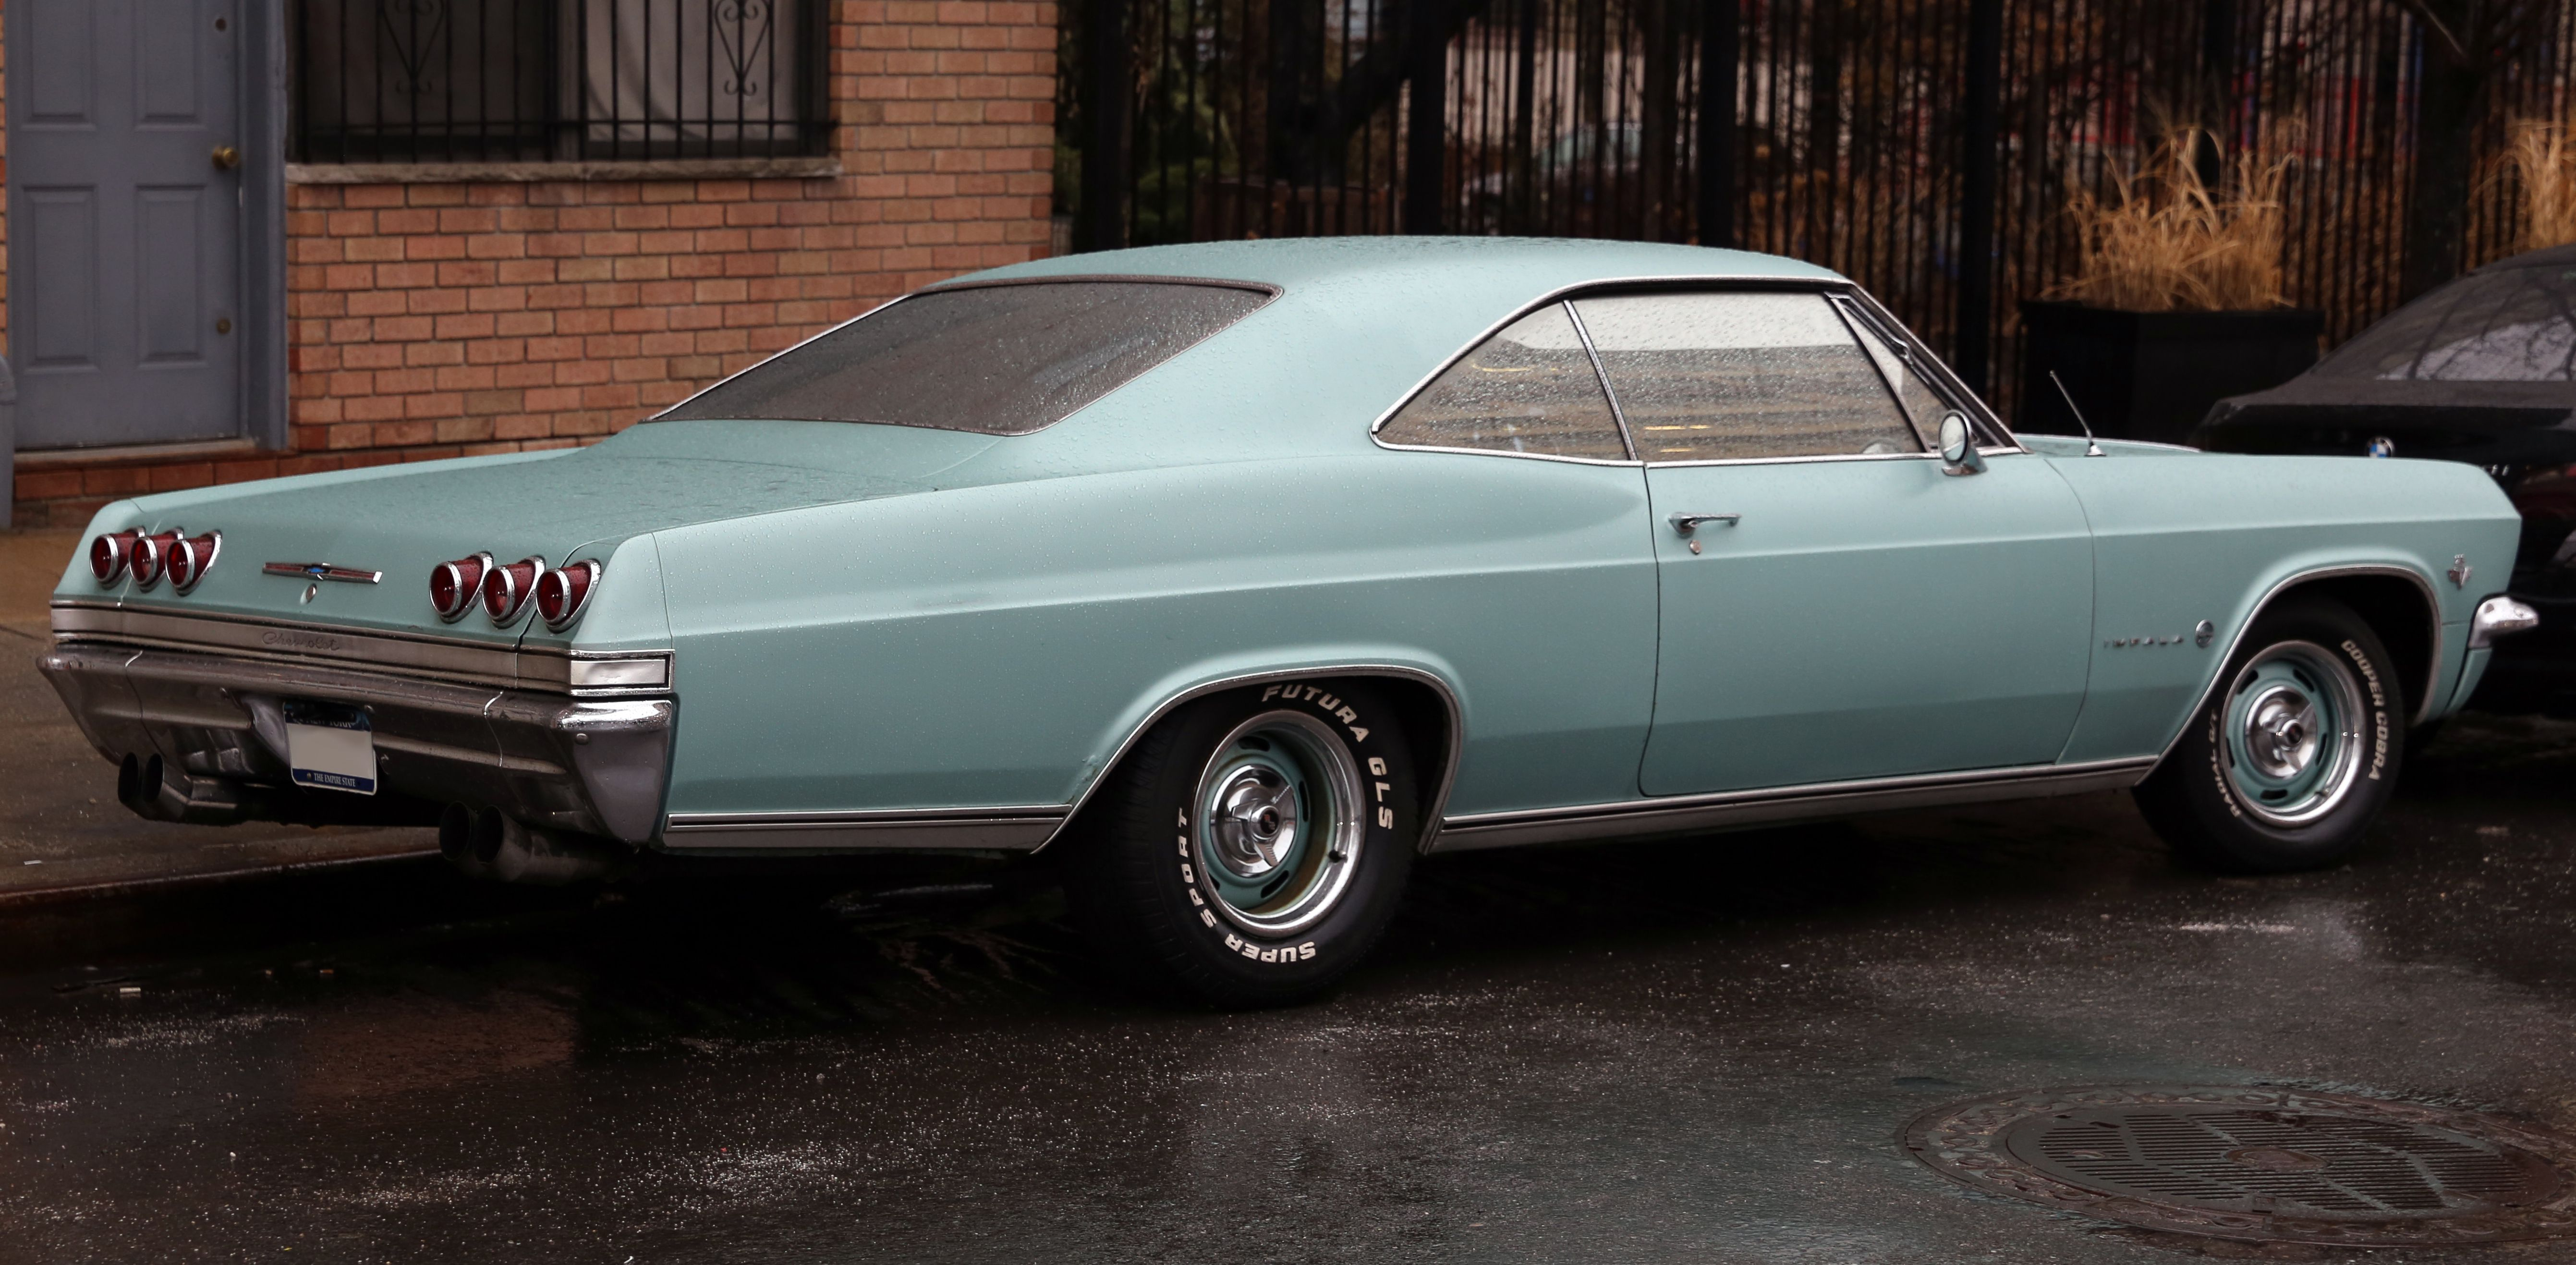 1965 Chevrolet Impala Sport Coupe 283 Cars & Racing